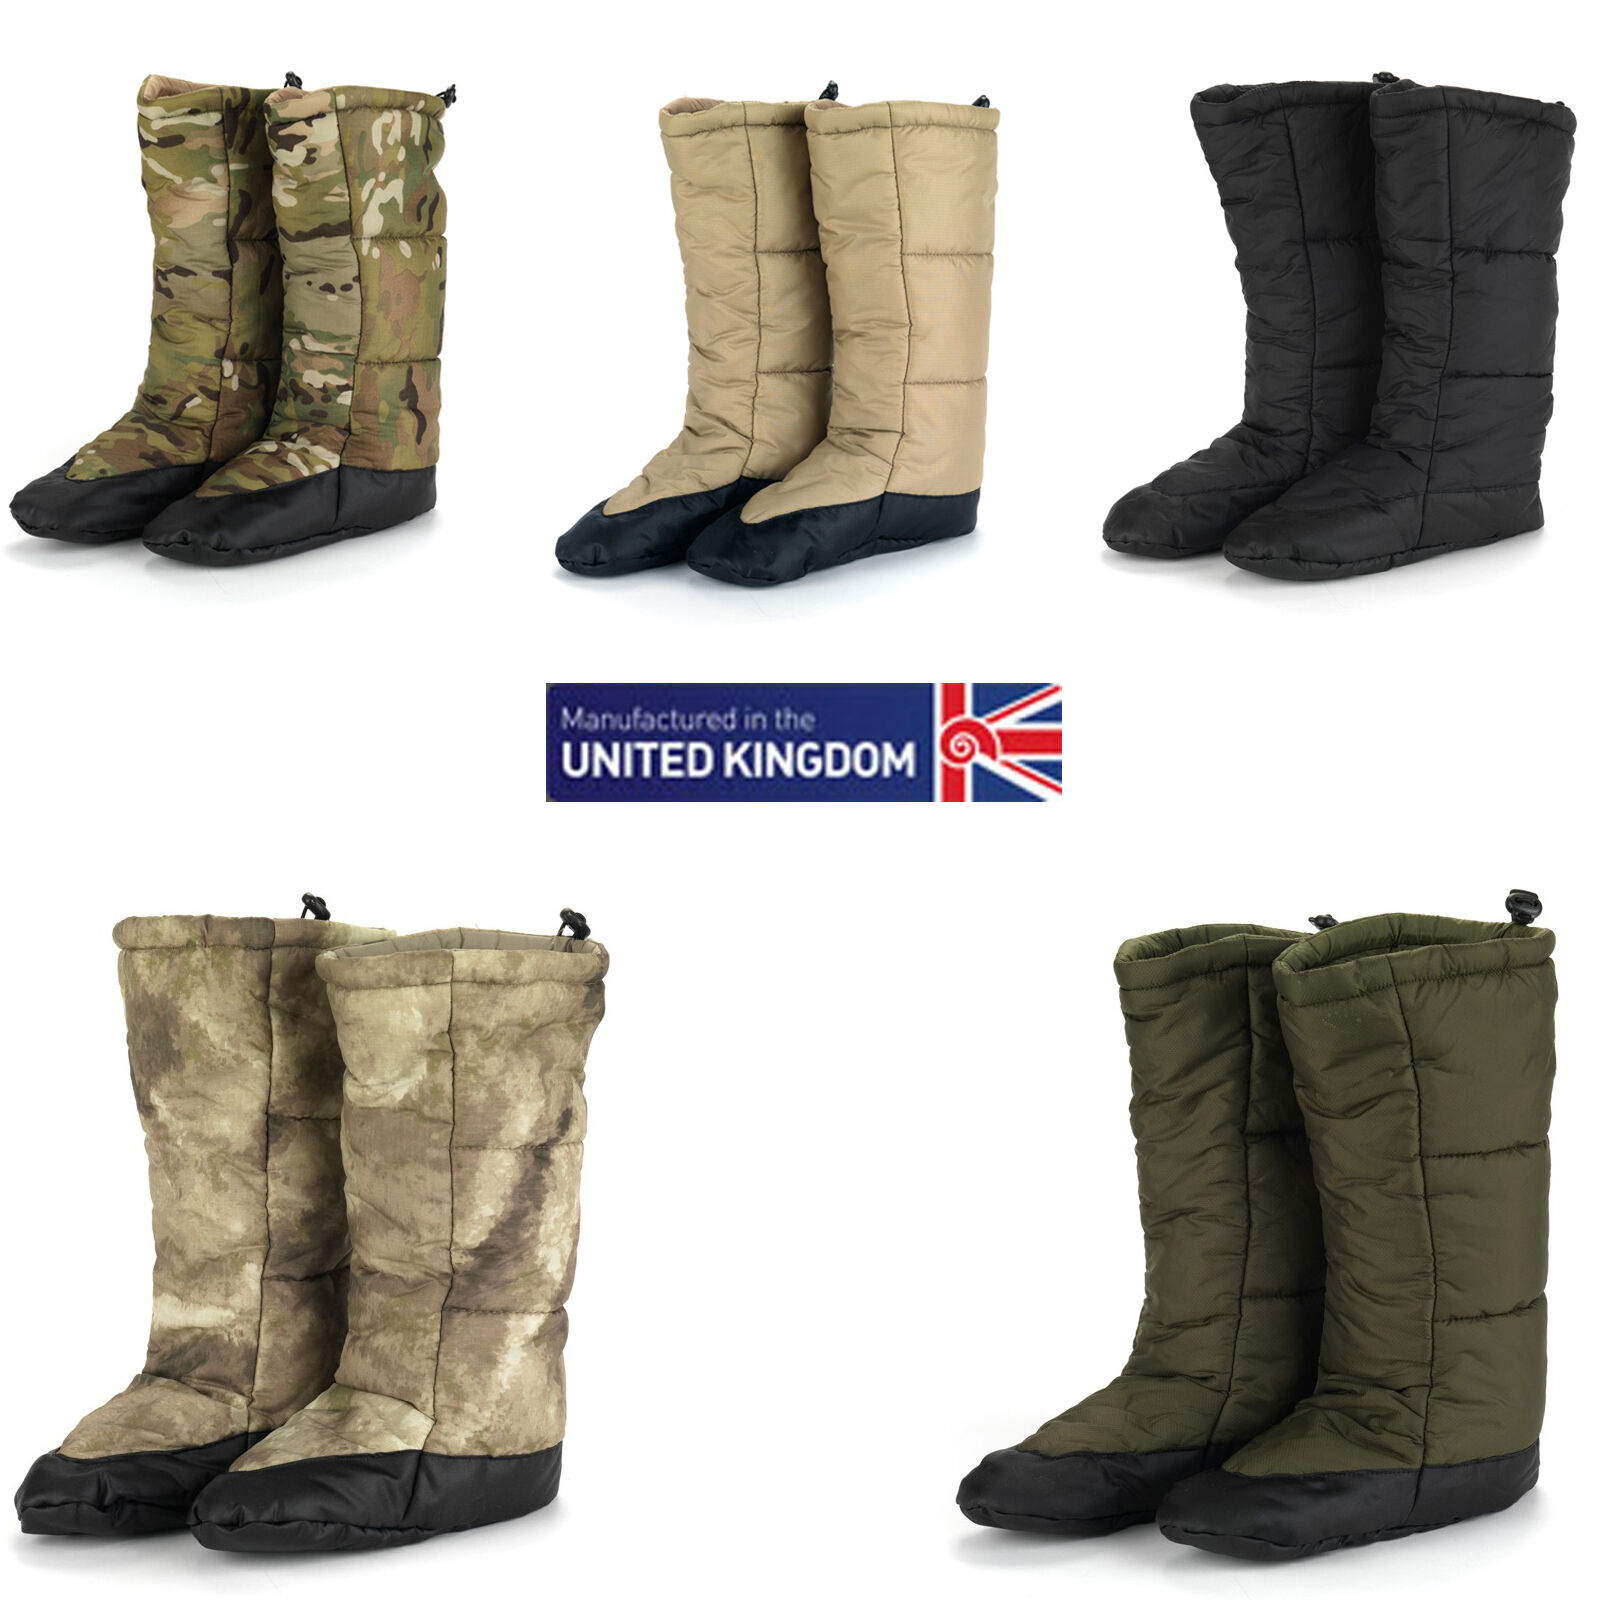 Snugpak Snugfeet Insulated Tent stivali Available in ATACS and Multicam All Dimensiones